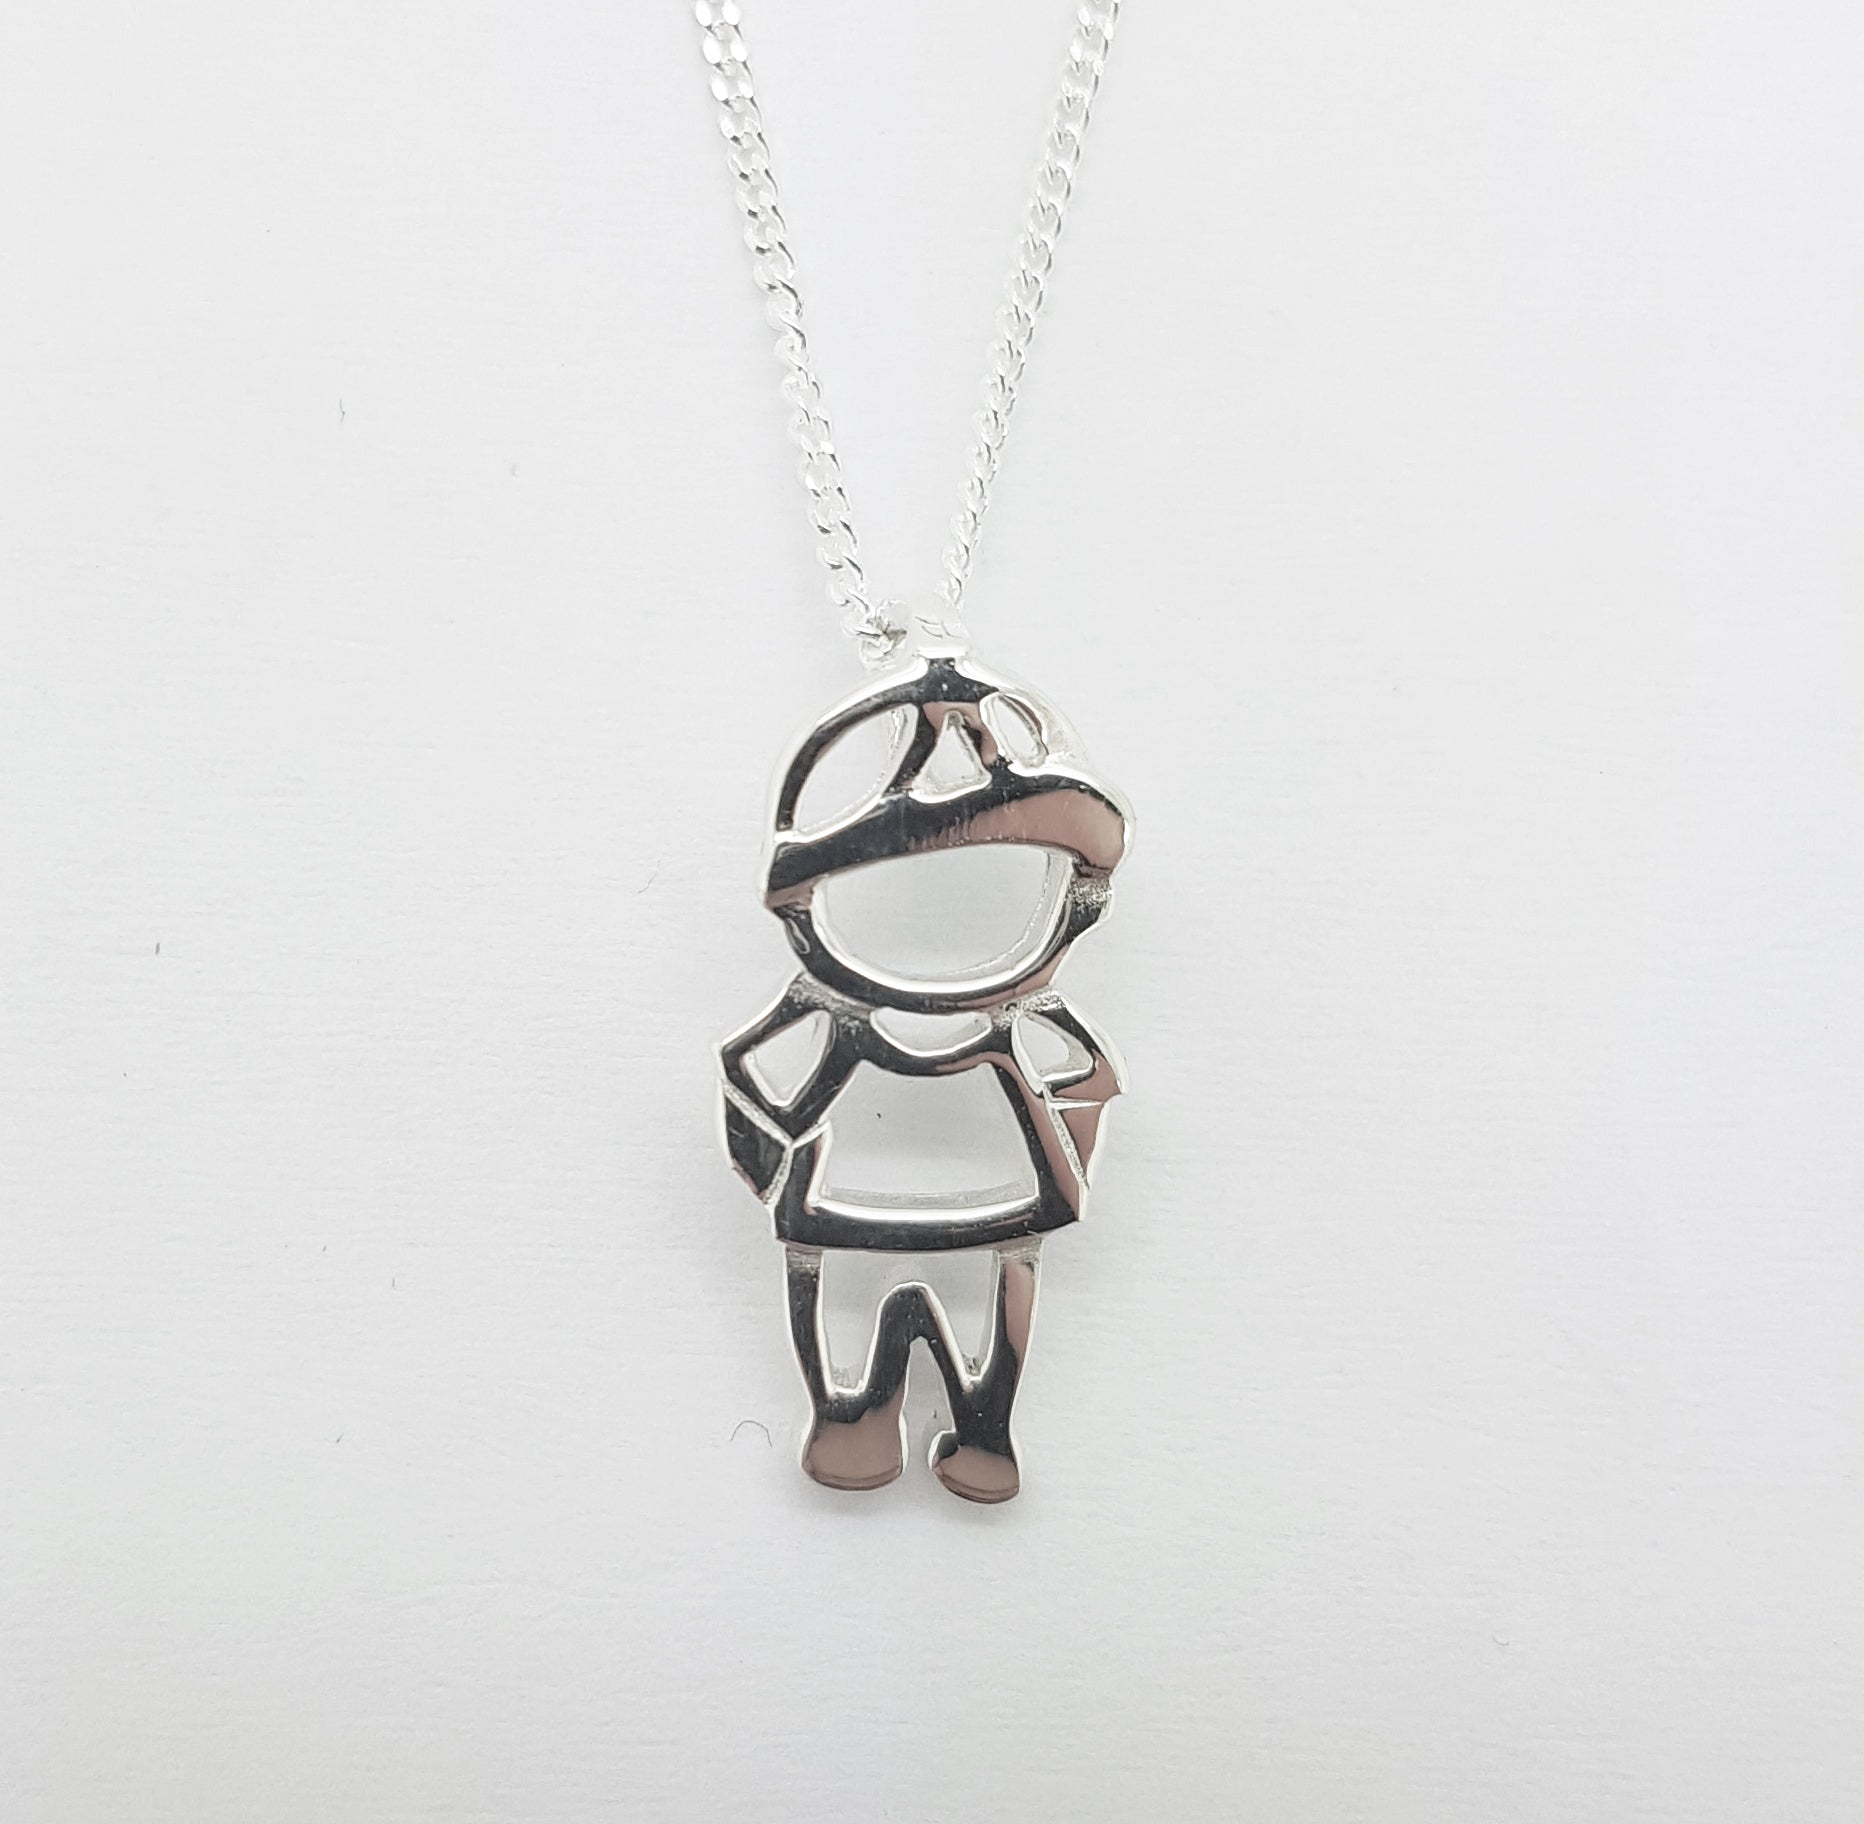 Pretty Silver Boy Pendant with Chain